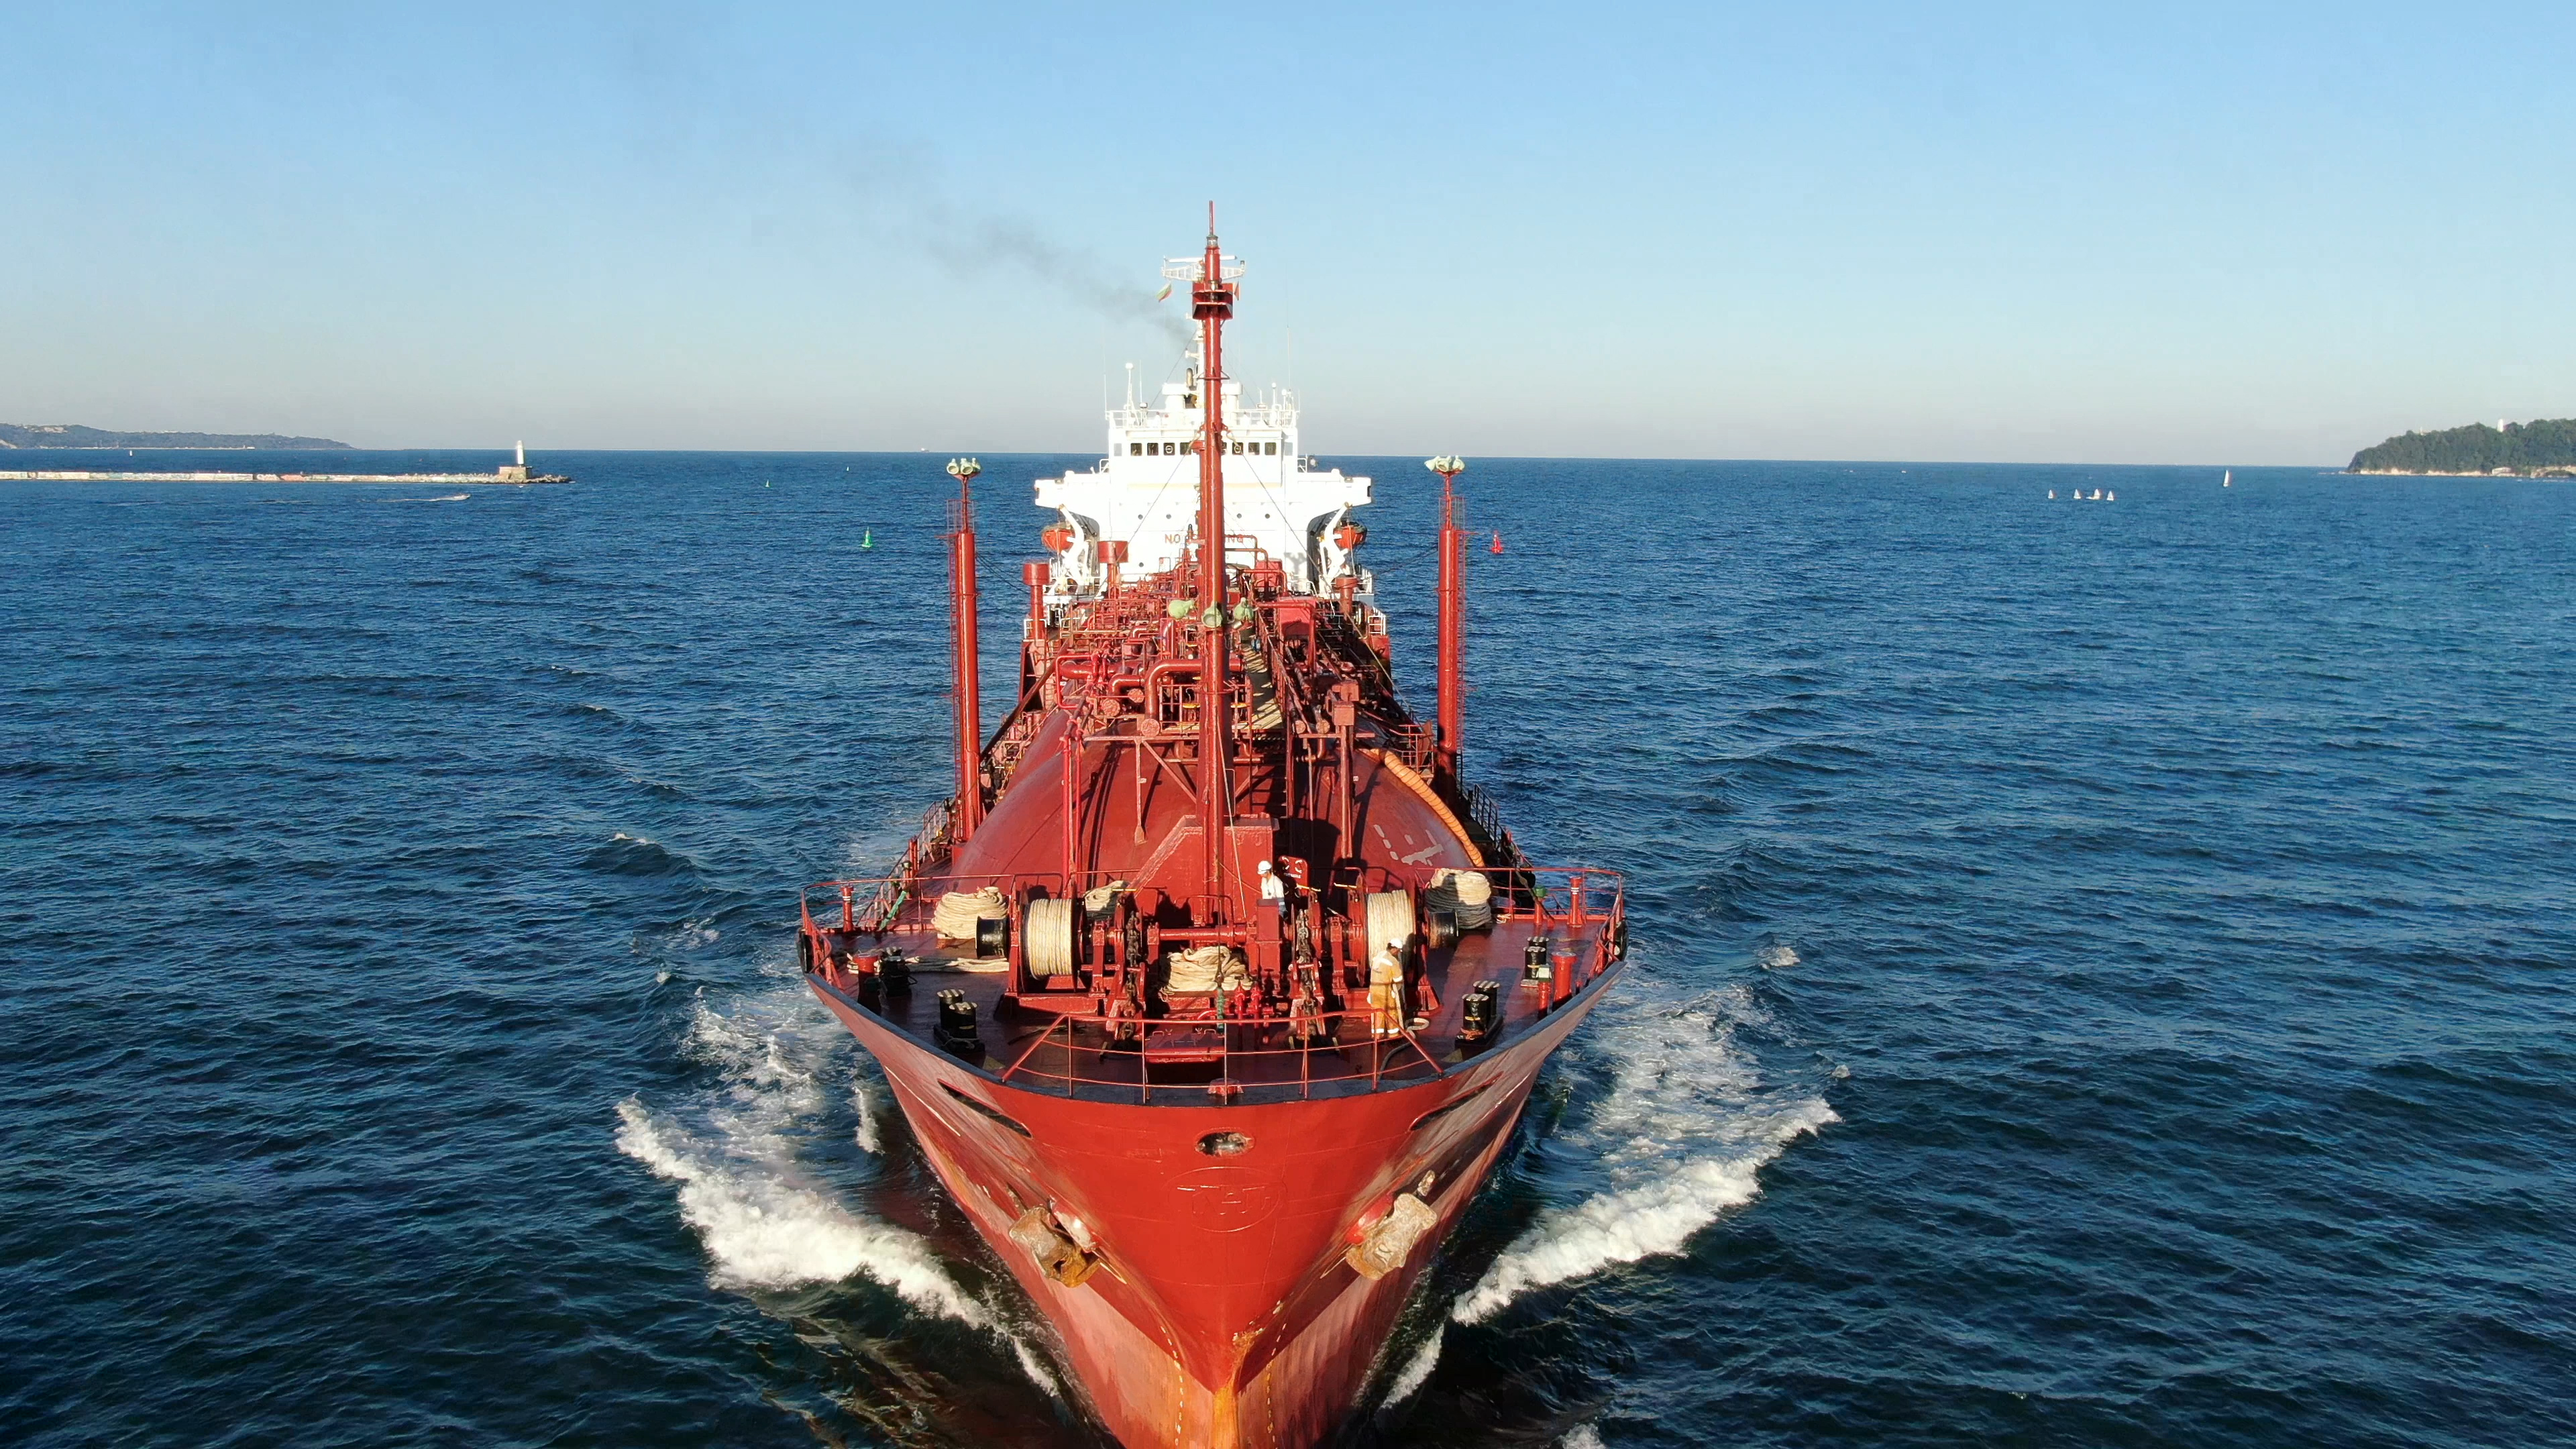 LPG tanker SEAGAS GOVERNOR left MTG Dolphin refreshed and is now heading again for her new tasks in high seas.